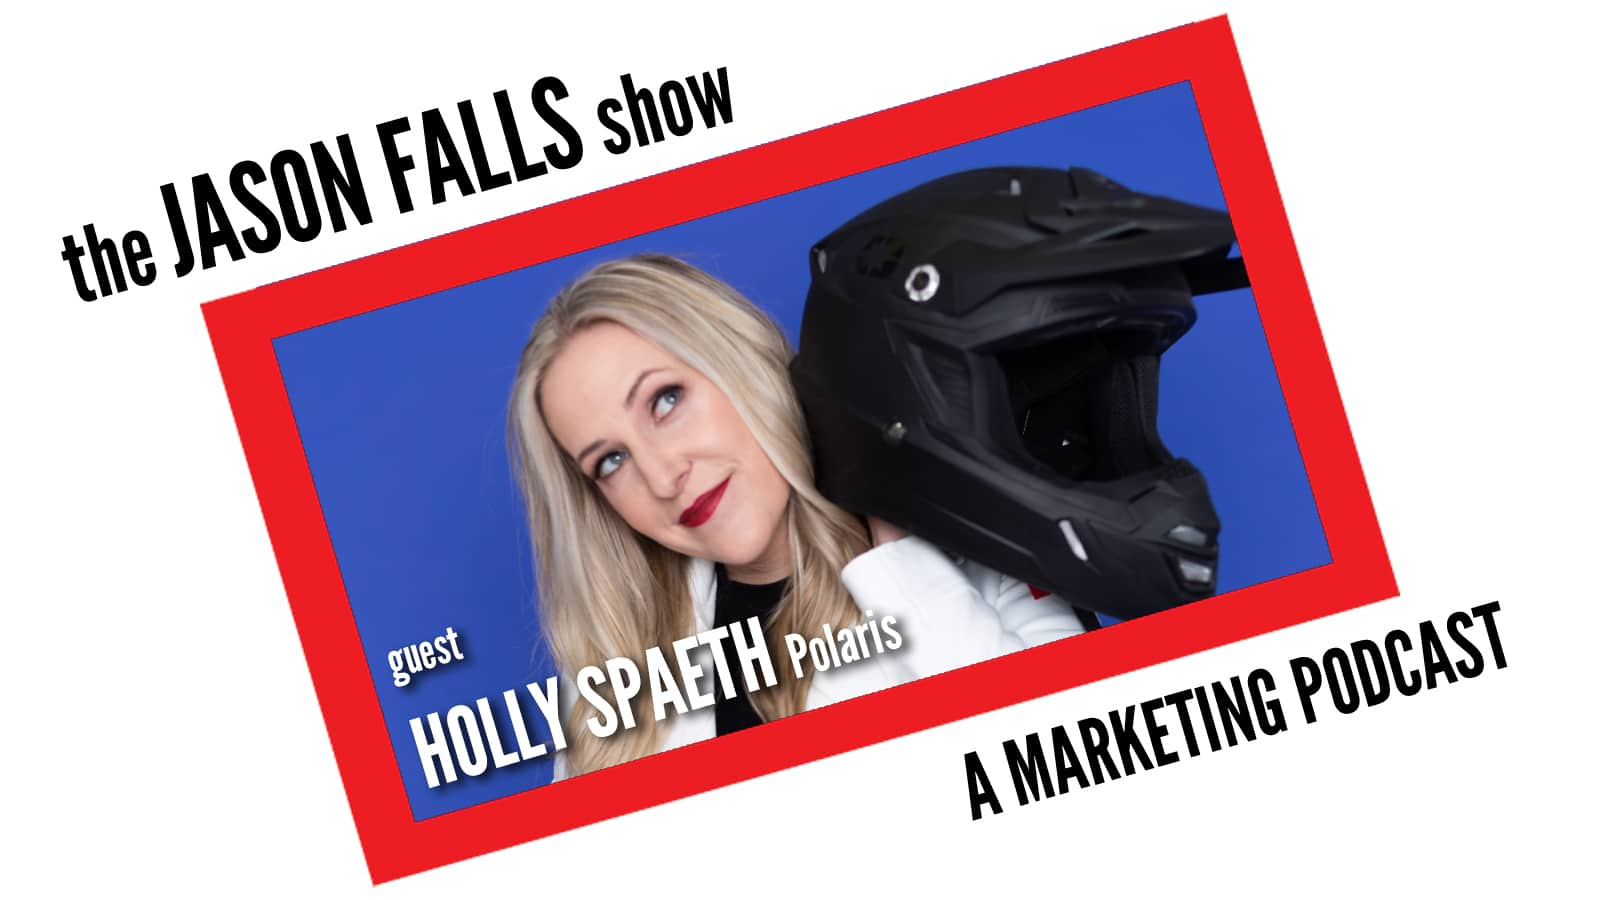 Holly Spaeth on Corporate Marketing for Adventure Brands on the Jason Falls Show